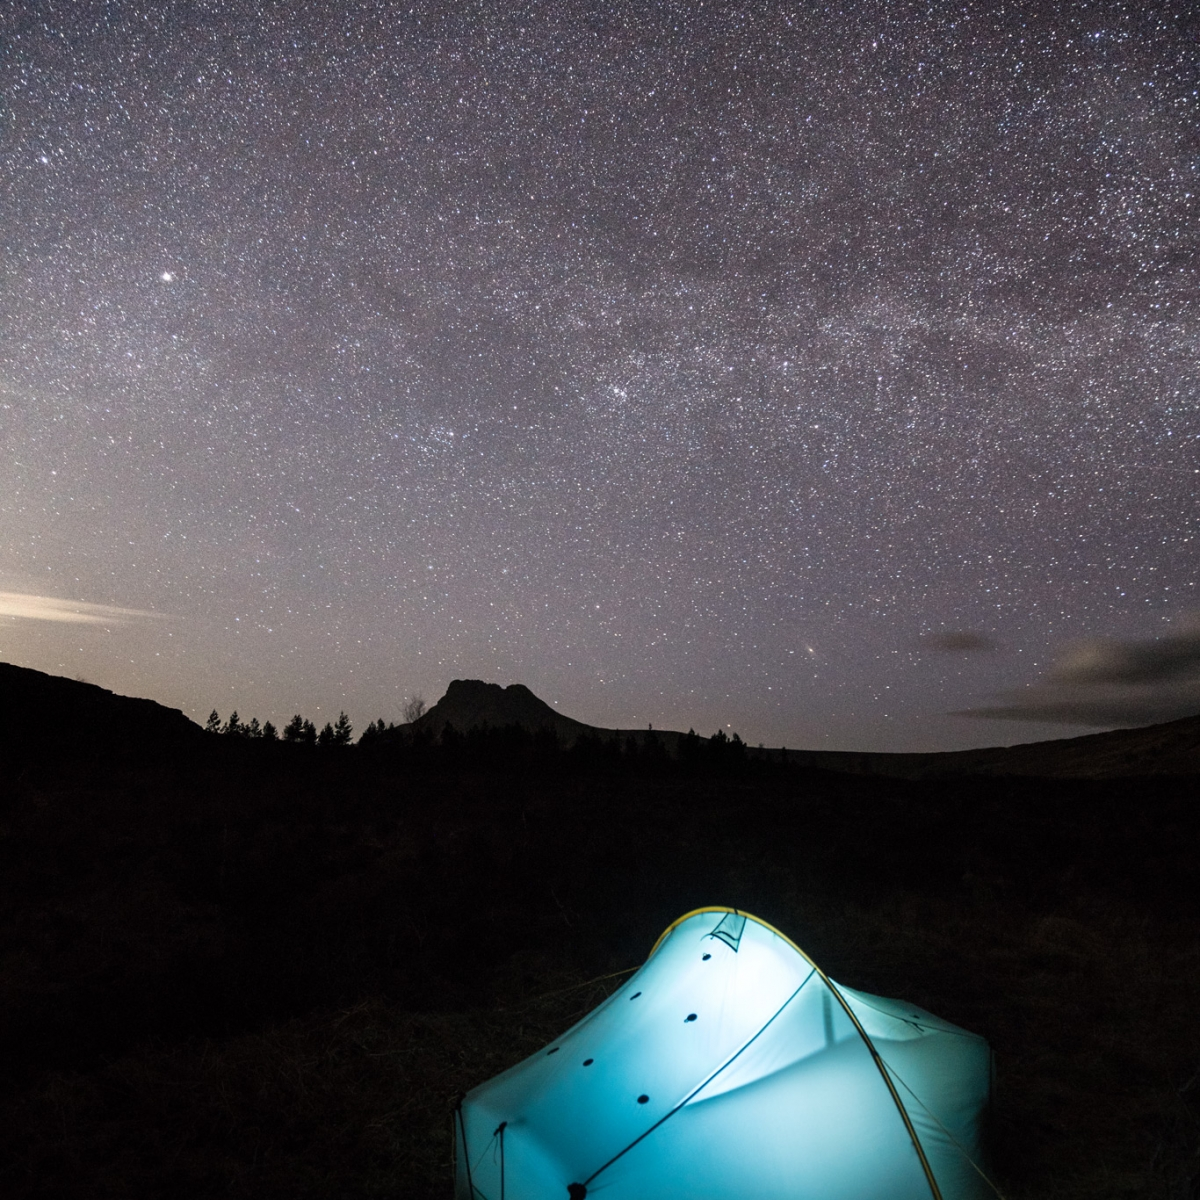 Wild Camping Under The Stars - Wild Camping Photography Workshops